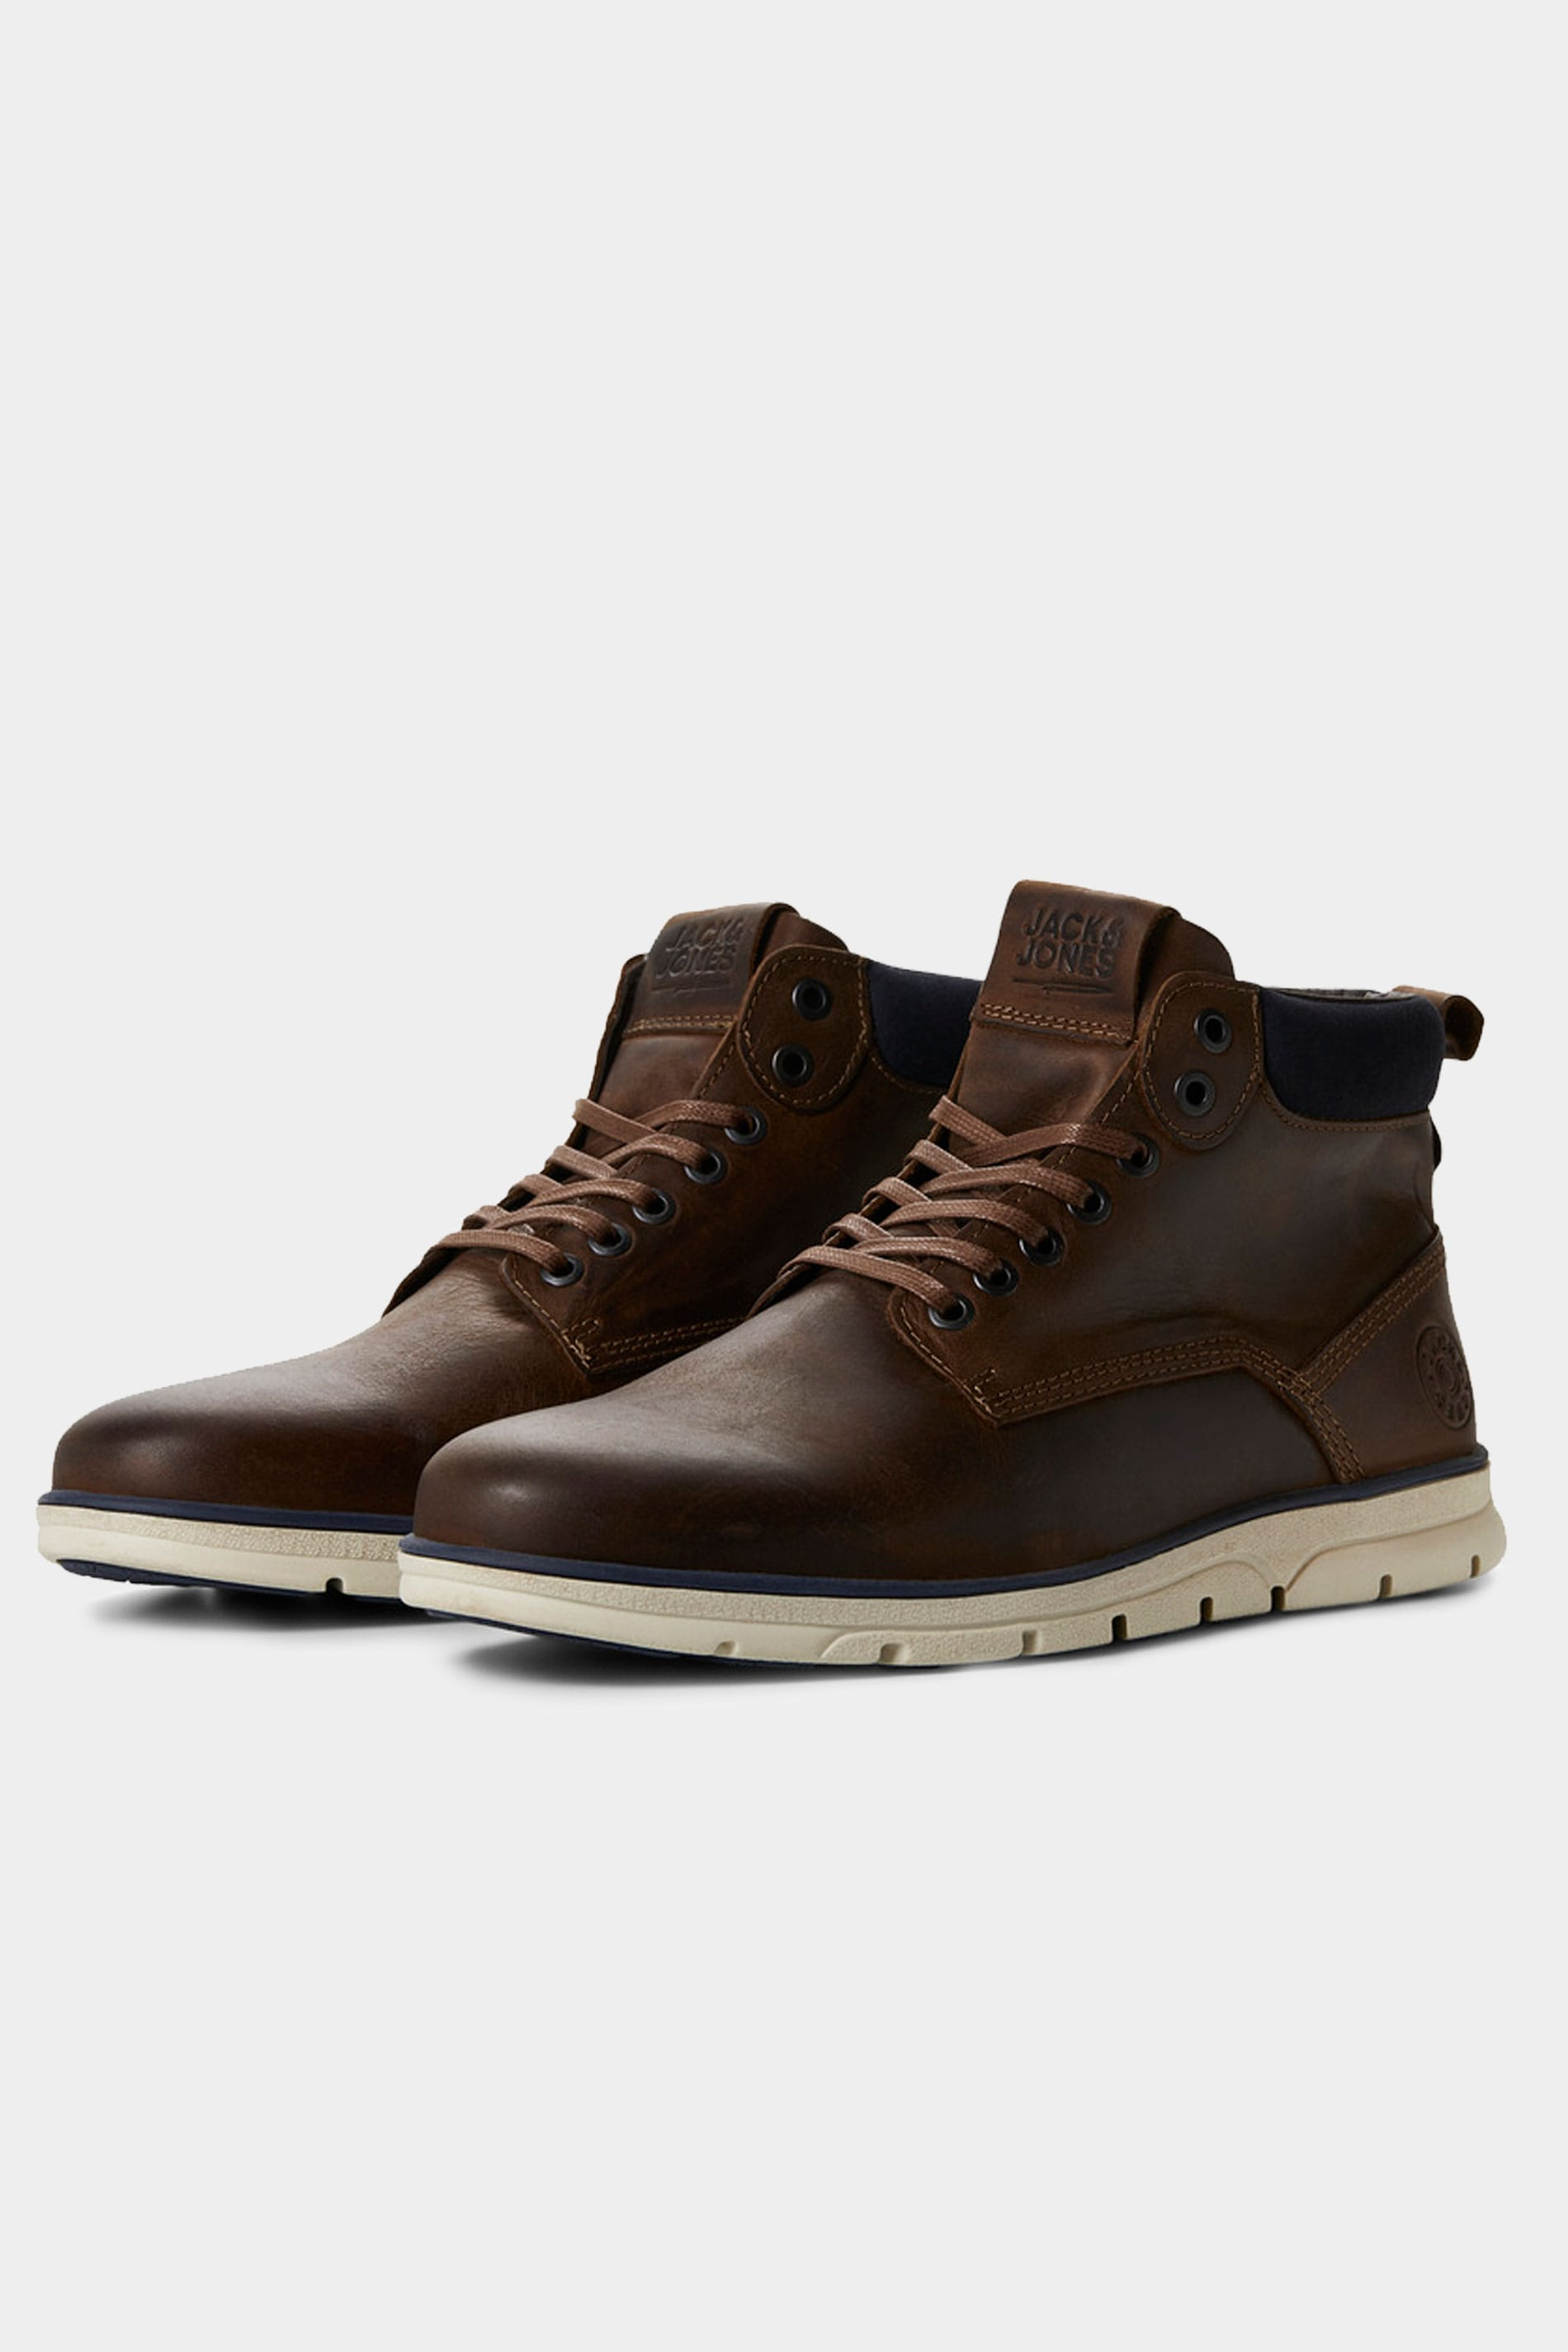 JACK & JONES Brown Leather Boots